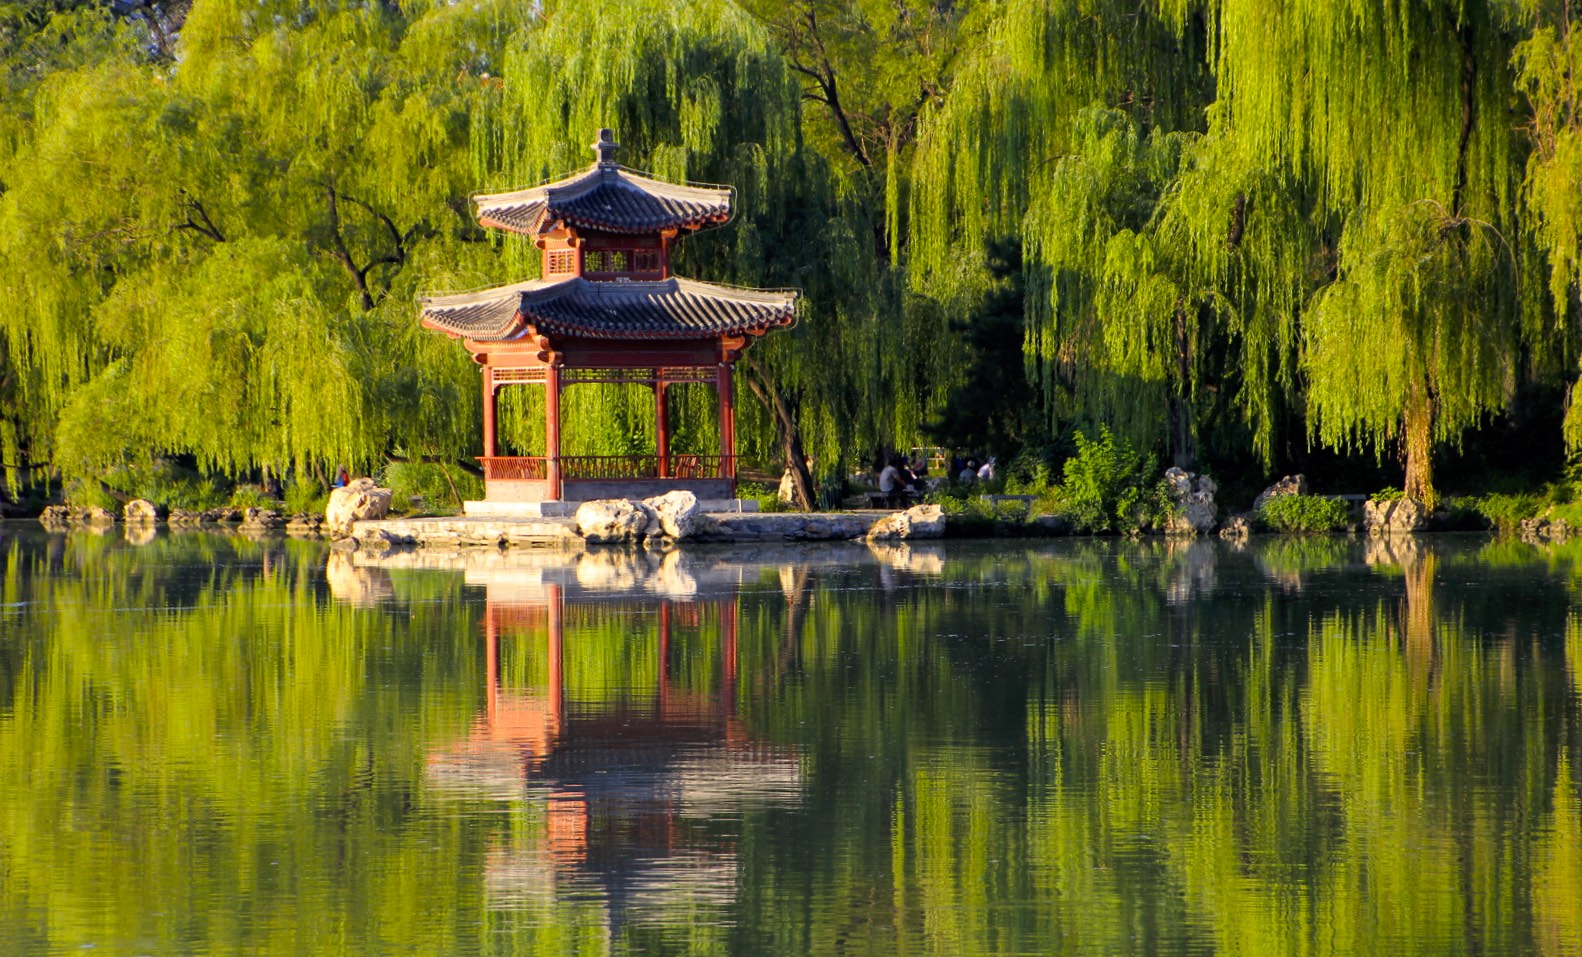 One of many parks in Beijing